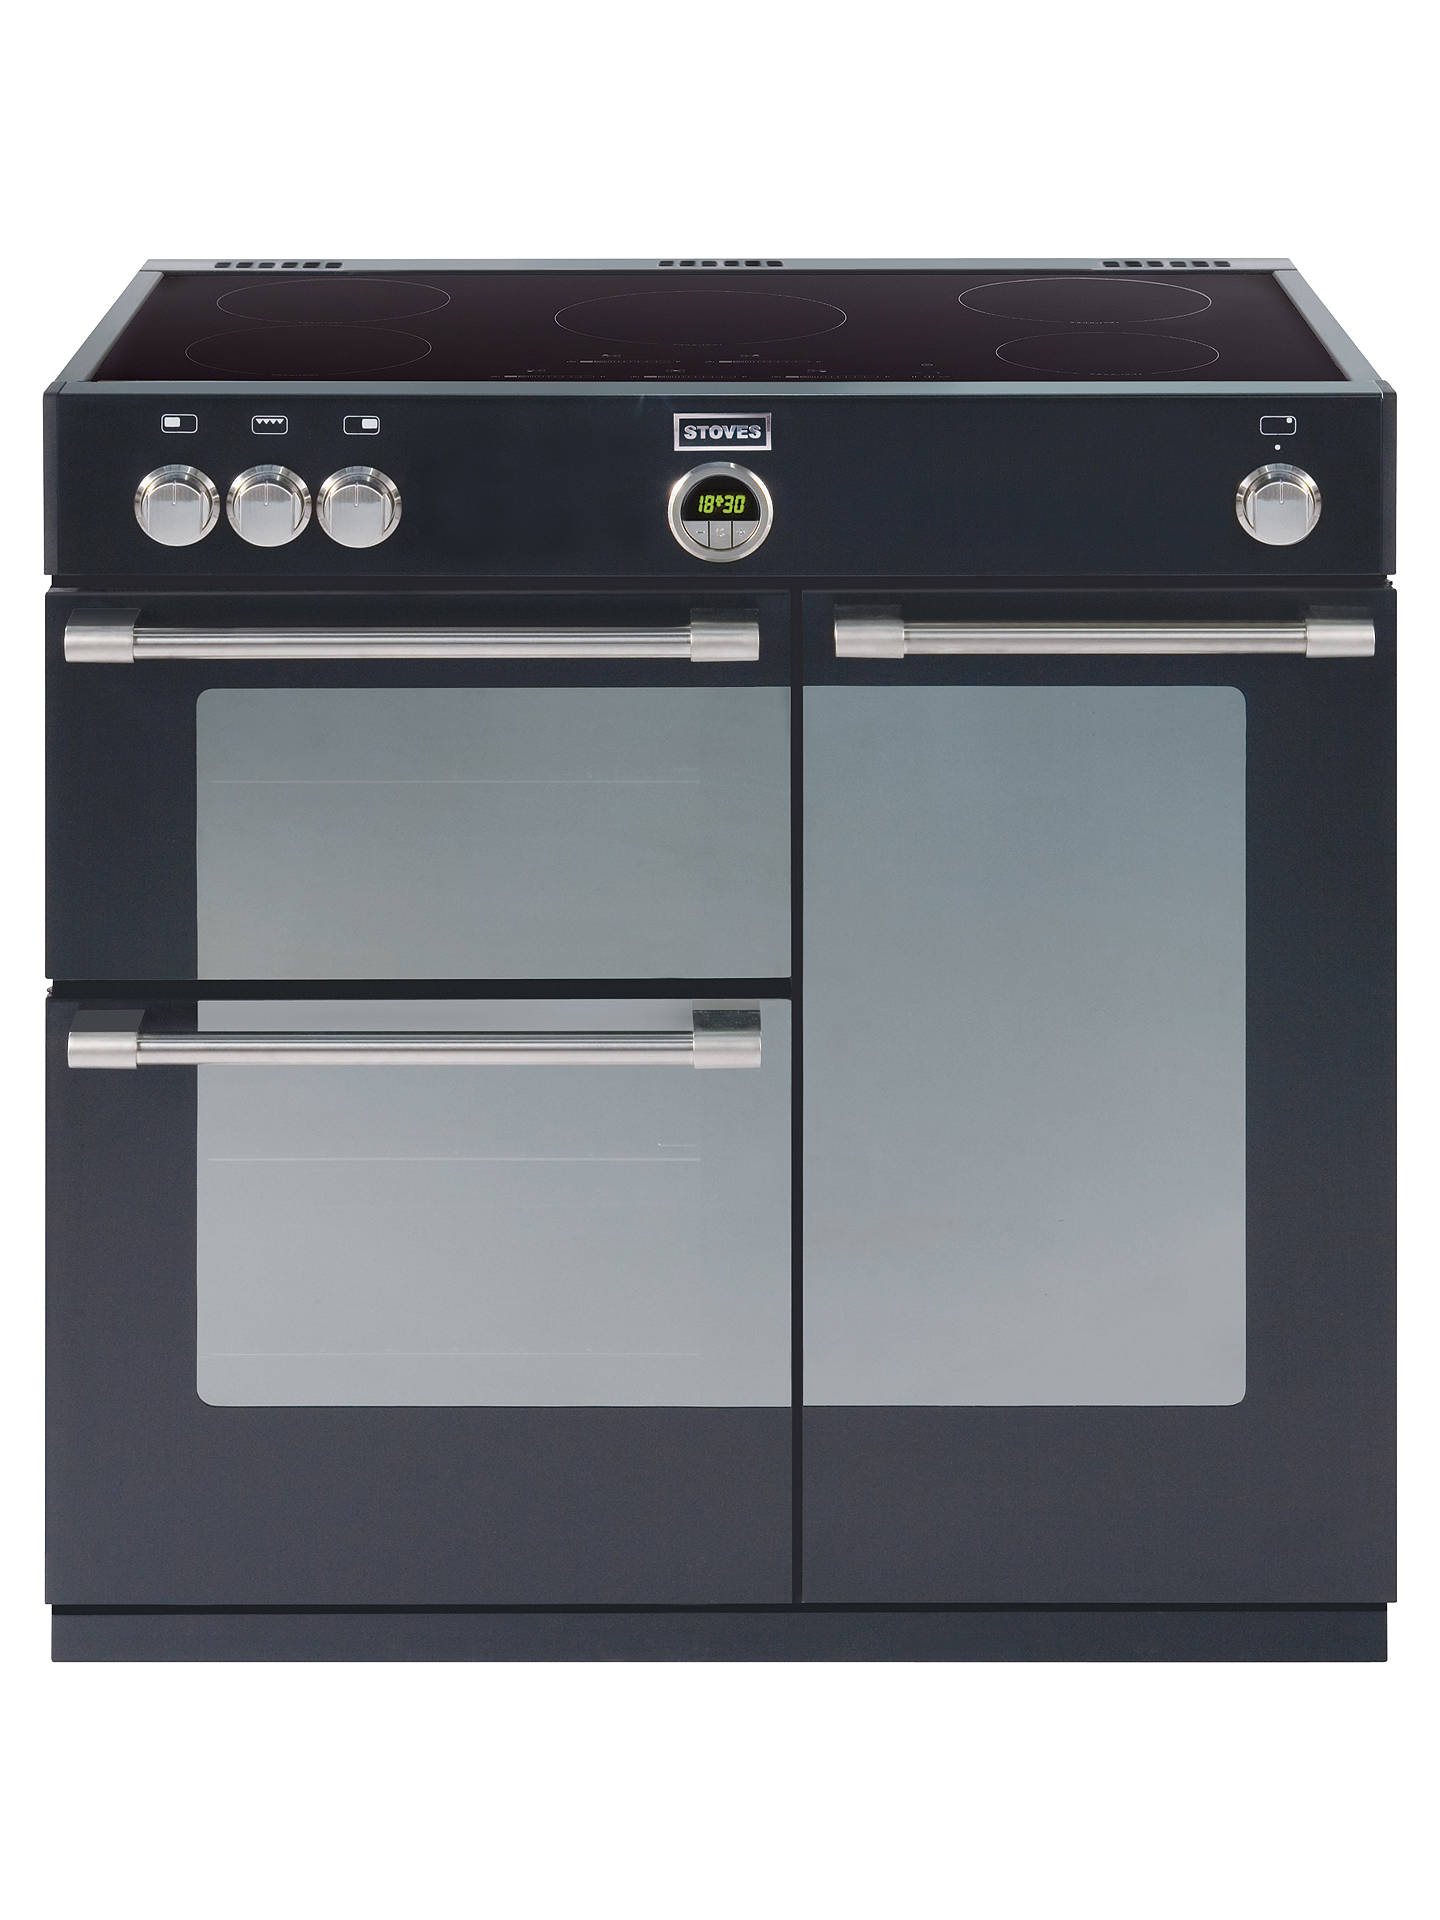 Stoves Sterling 900ei Induction Hob Range Cooker Black At John Simple Heater Circuit Hot Plate Buystoves Online